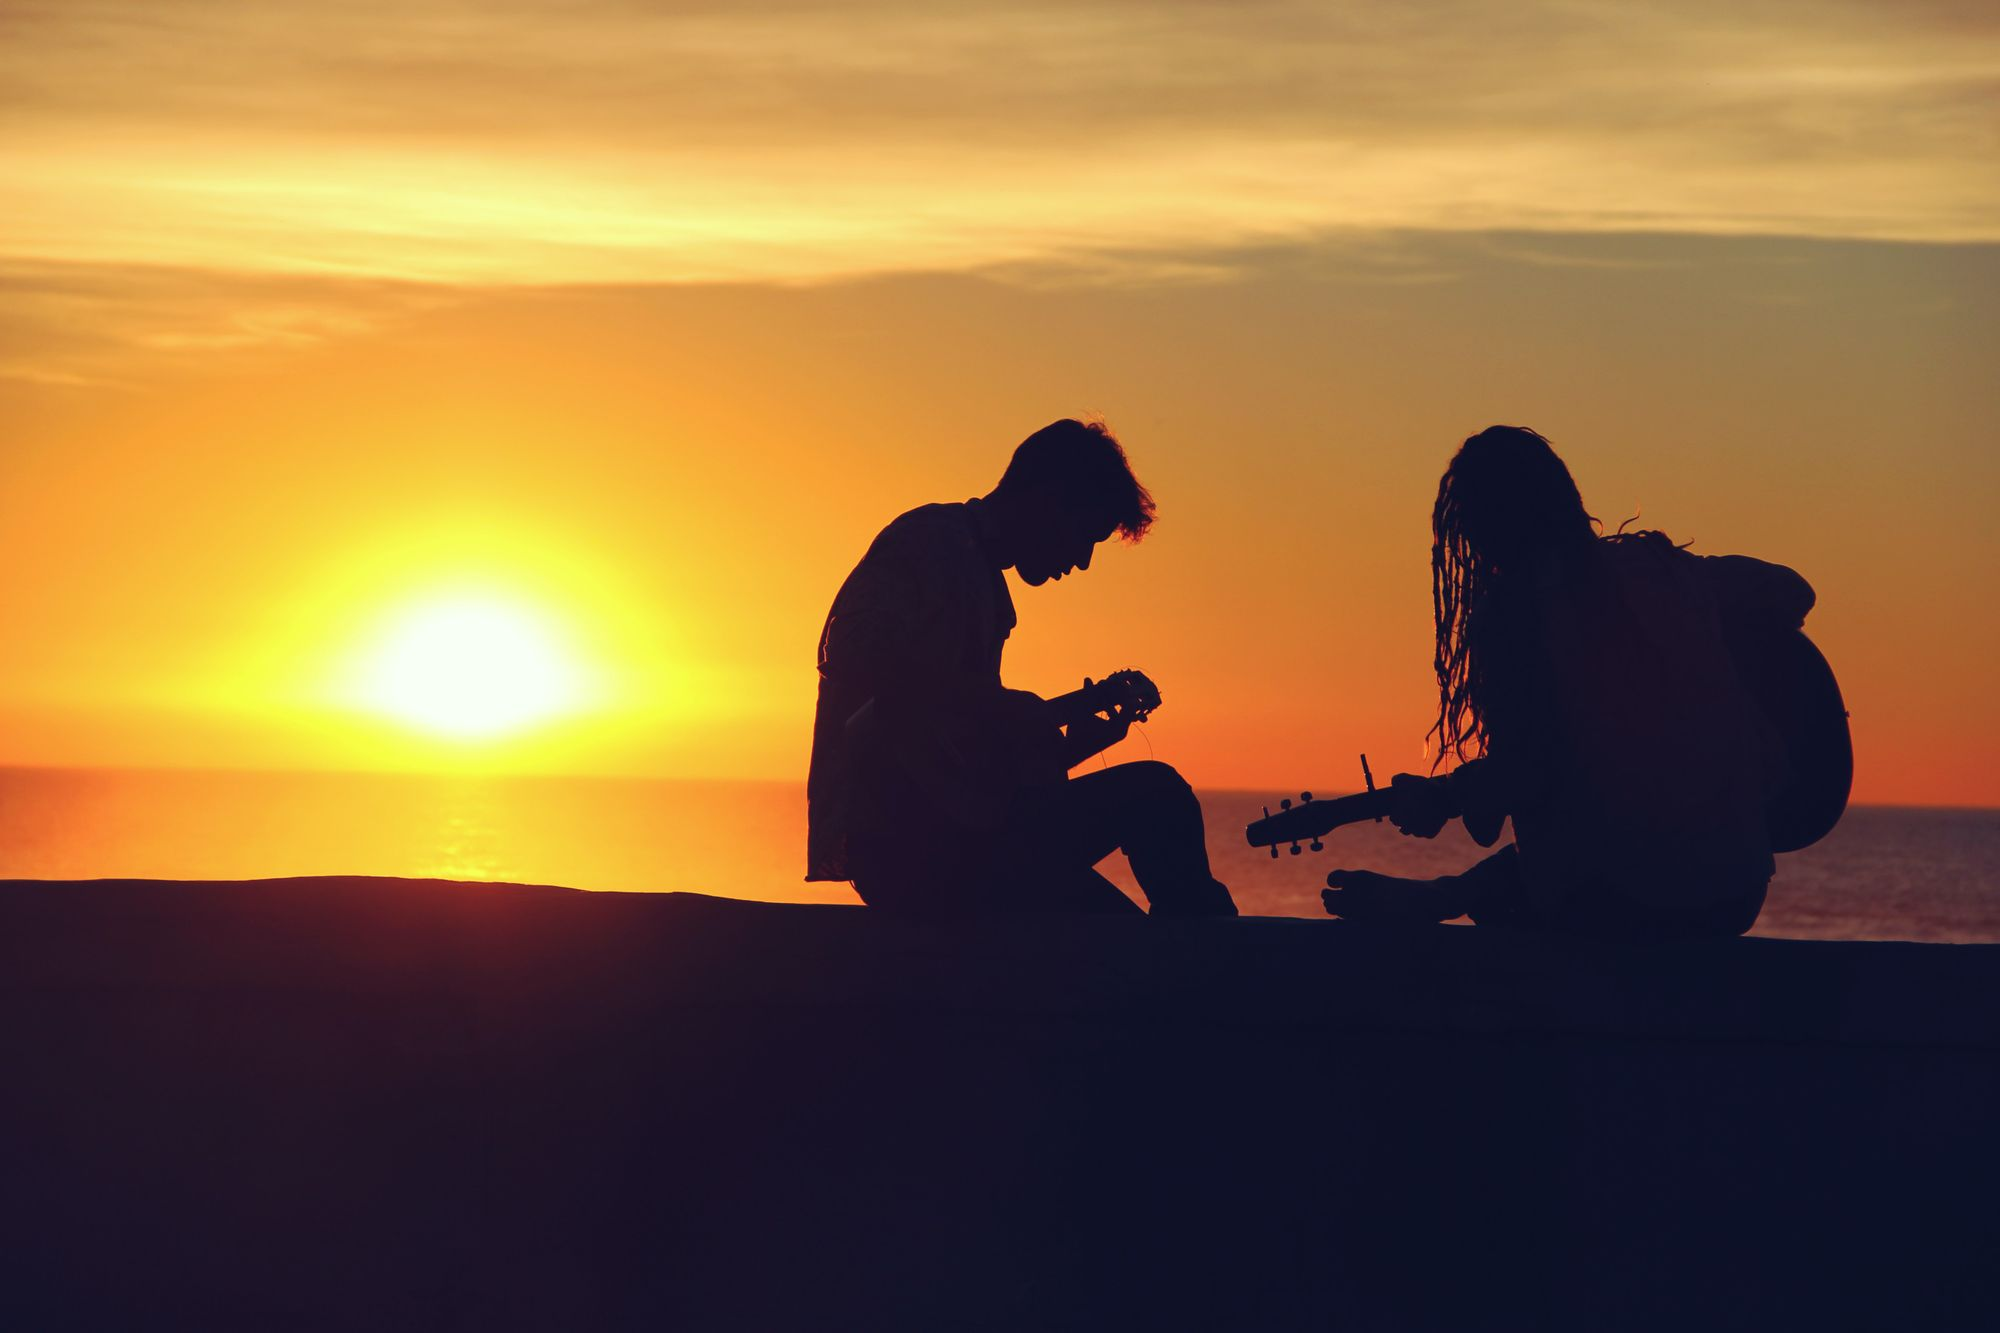 Two people playing the guitar on a beach while the sun sets